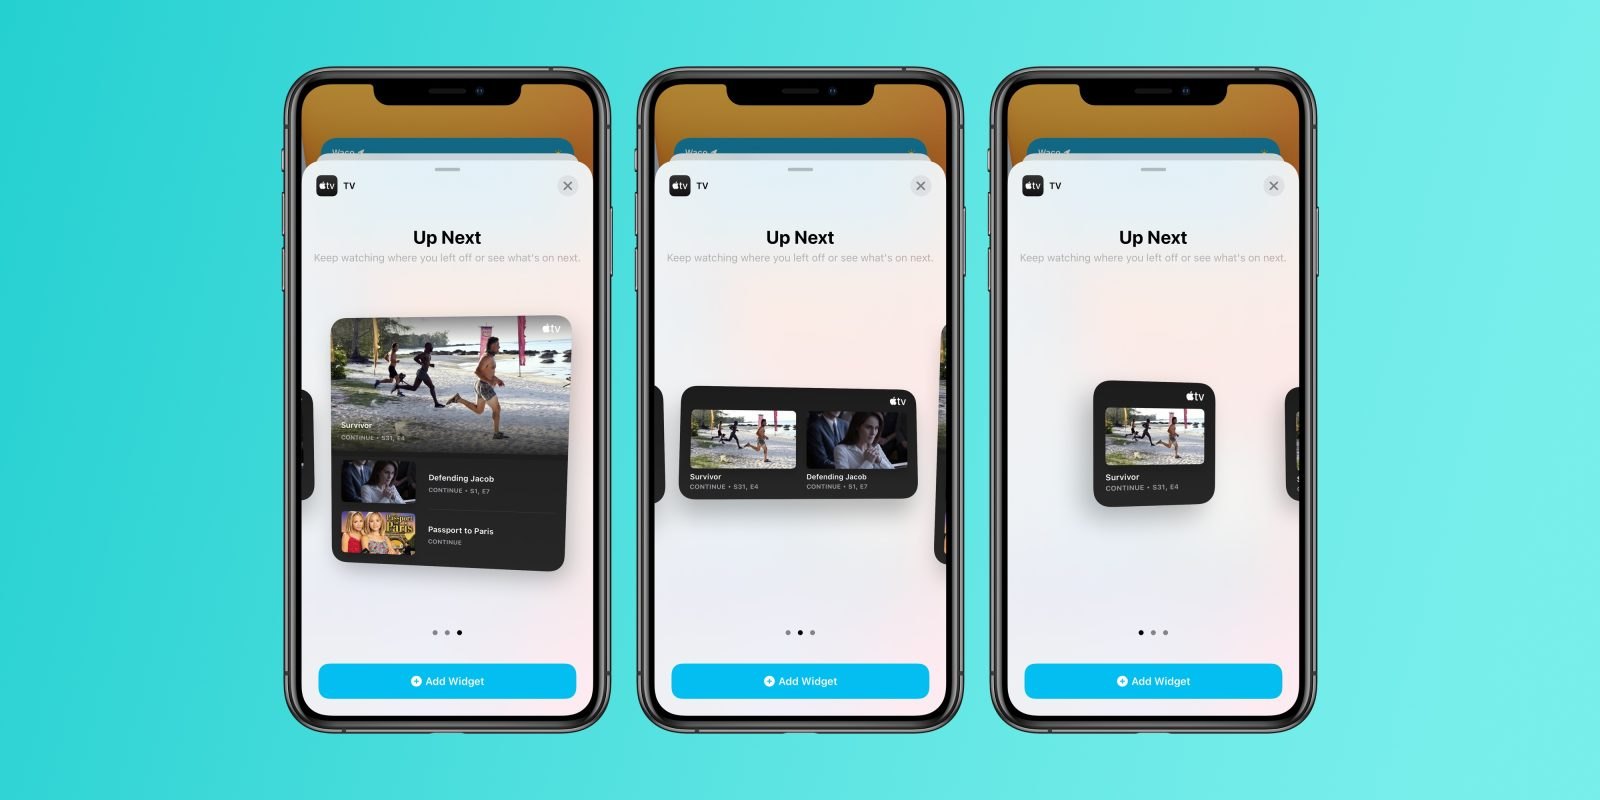 "What's new in iOS 14 beta 4"" New TV app widgets, Exposure Notification API support, more"